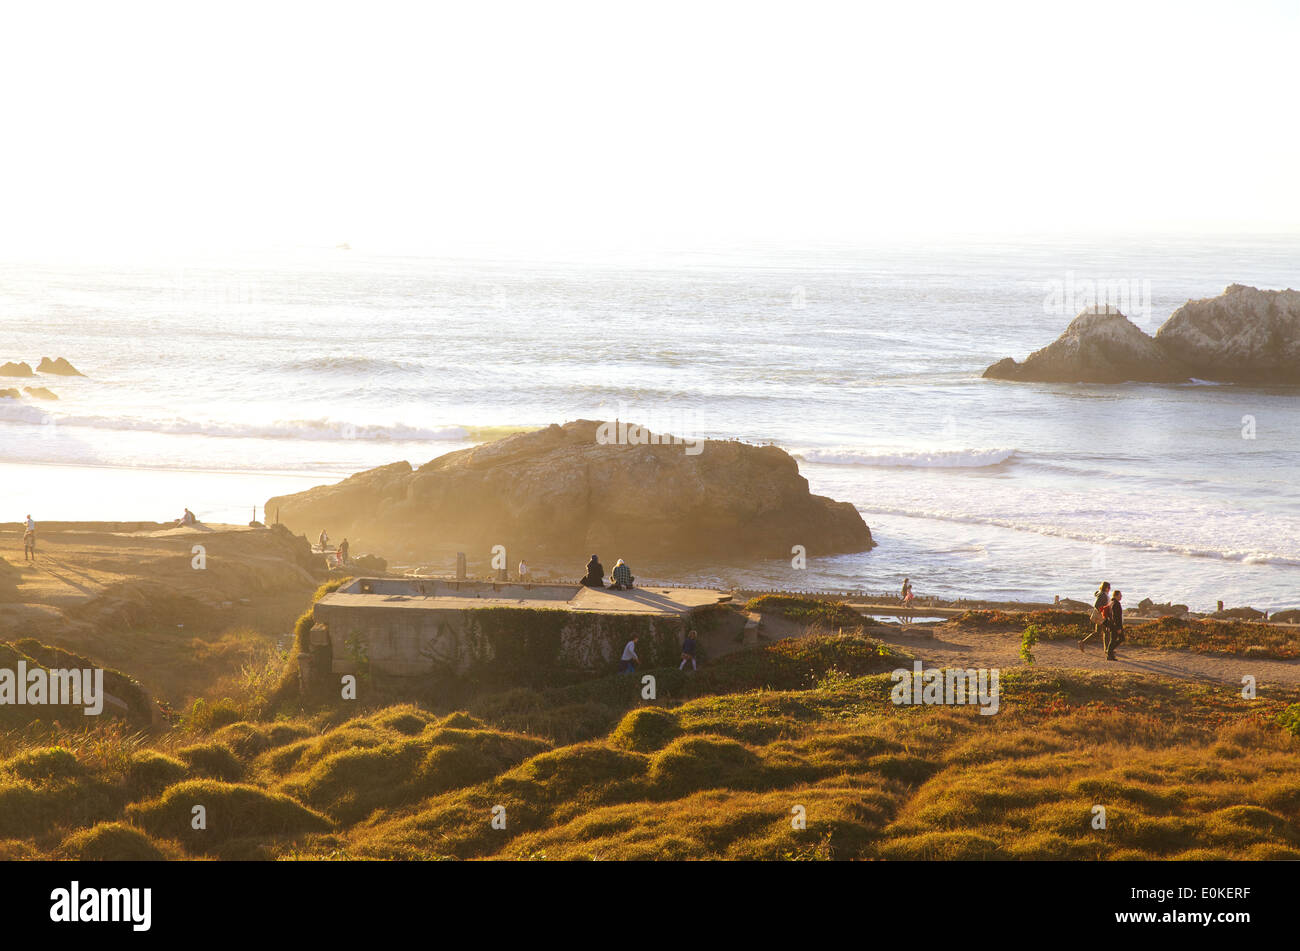 People enjoy the sunshine and walk around at the waterfront at the Sutro Baths at Lands End in San Francisco, California. - Stock Image